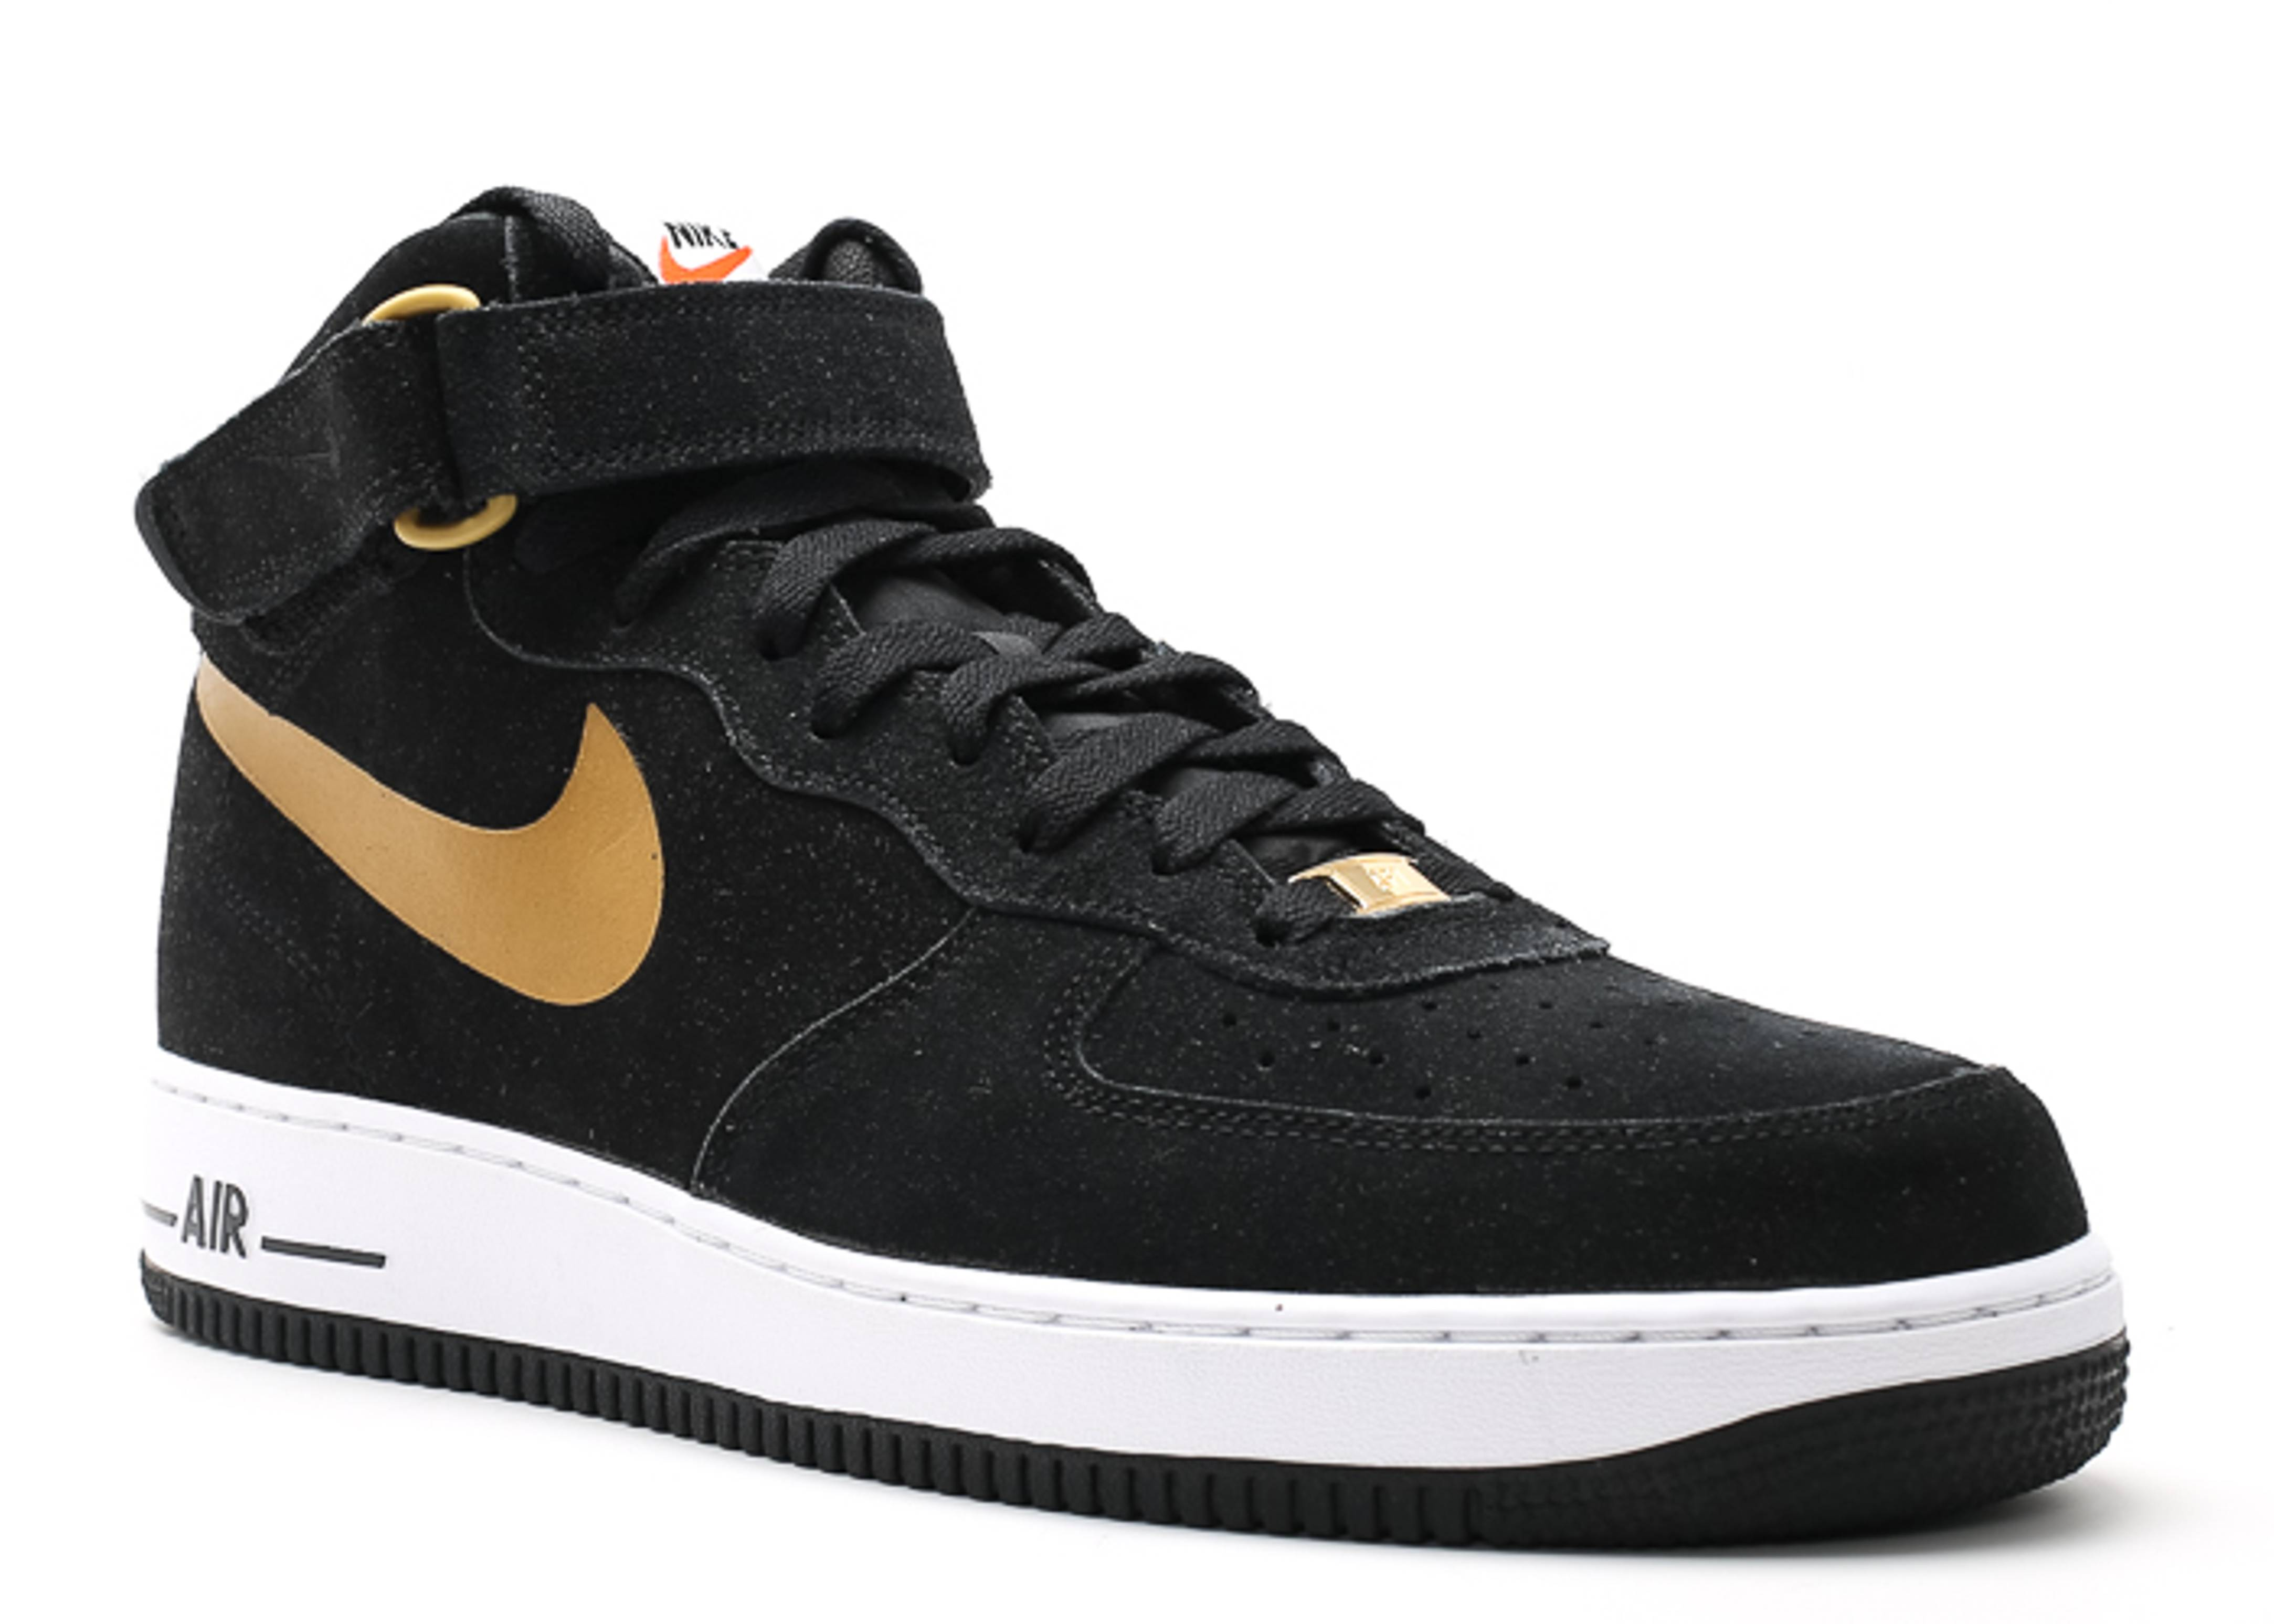 air force 1 mid 07 black metallic gold white. Black Bedroom Furniture Sets. Home Design Ideas